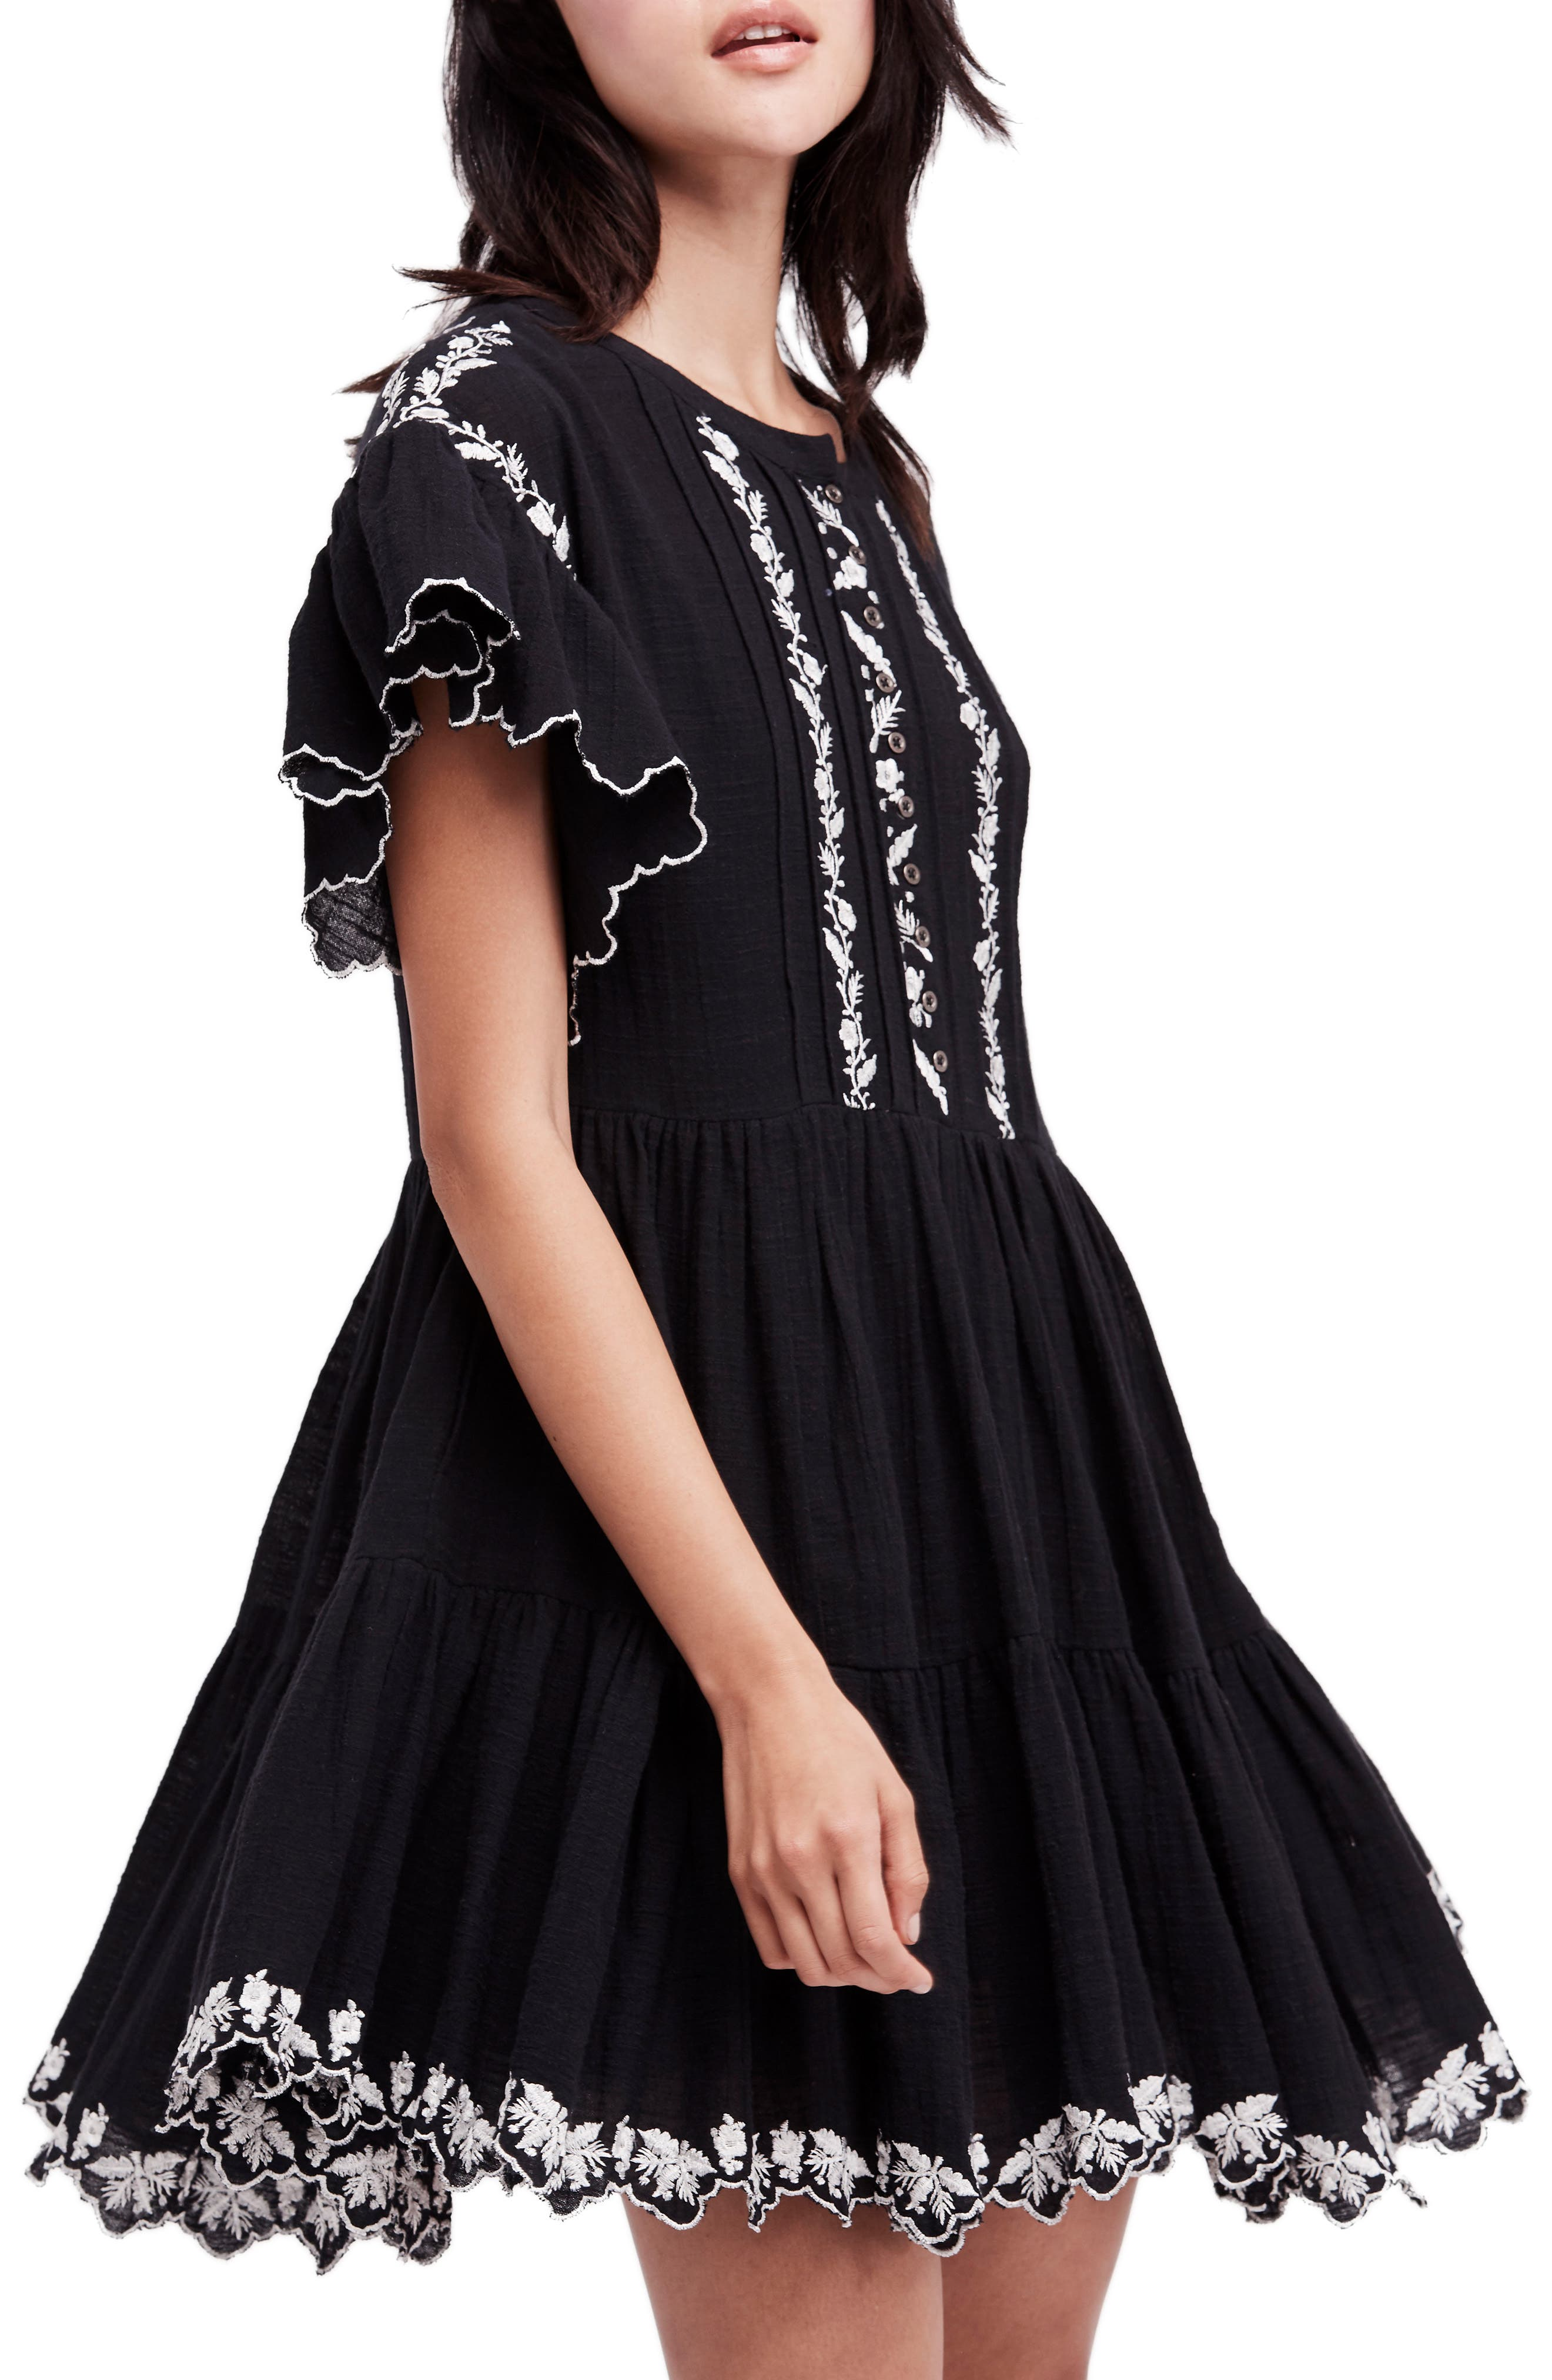 Santiago Embroidered Minidress,                         Main,                         color, Black